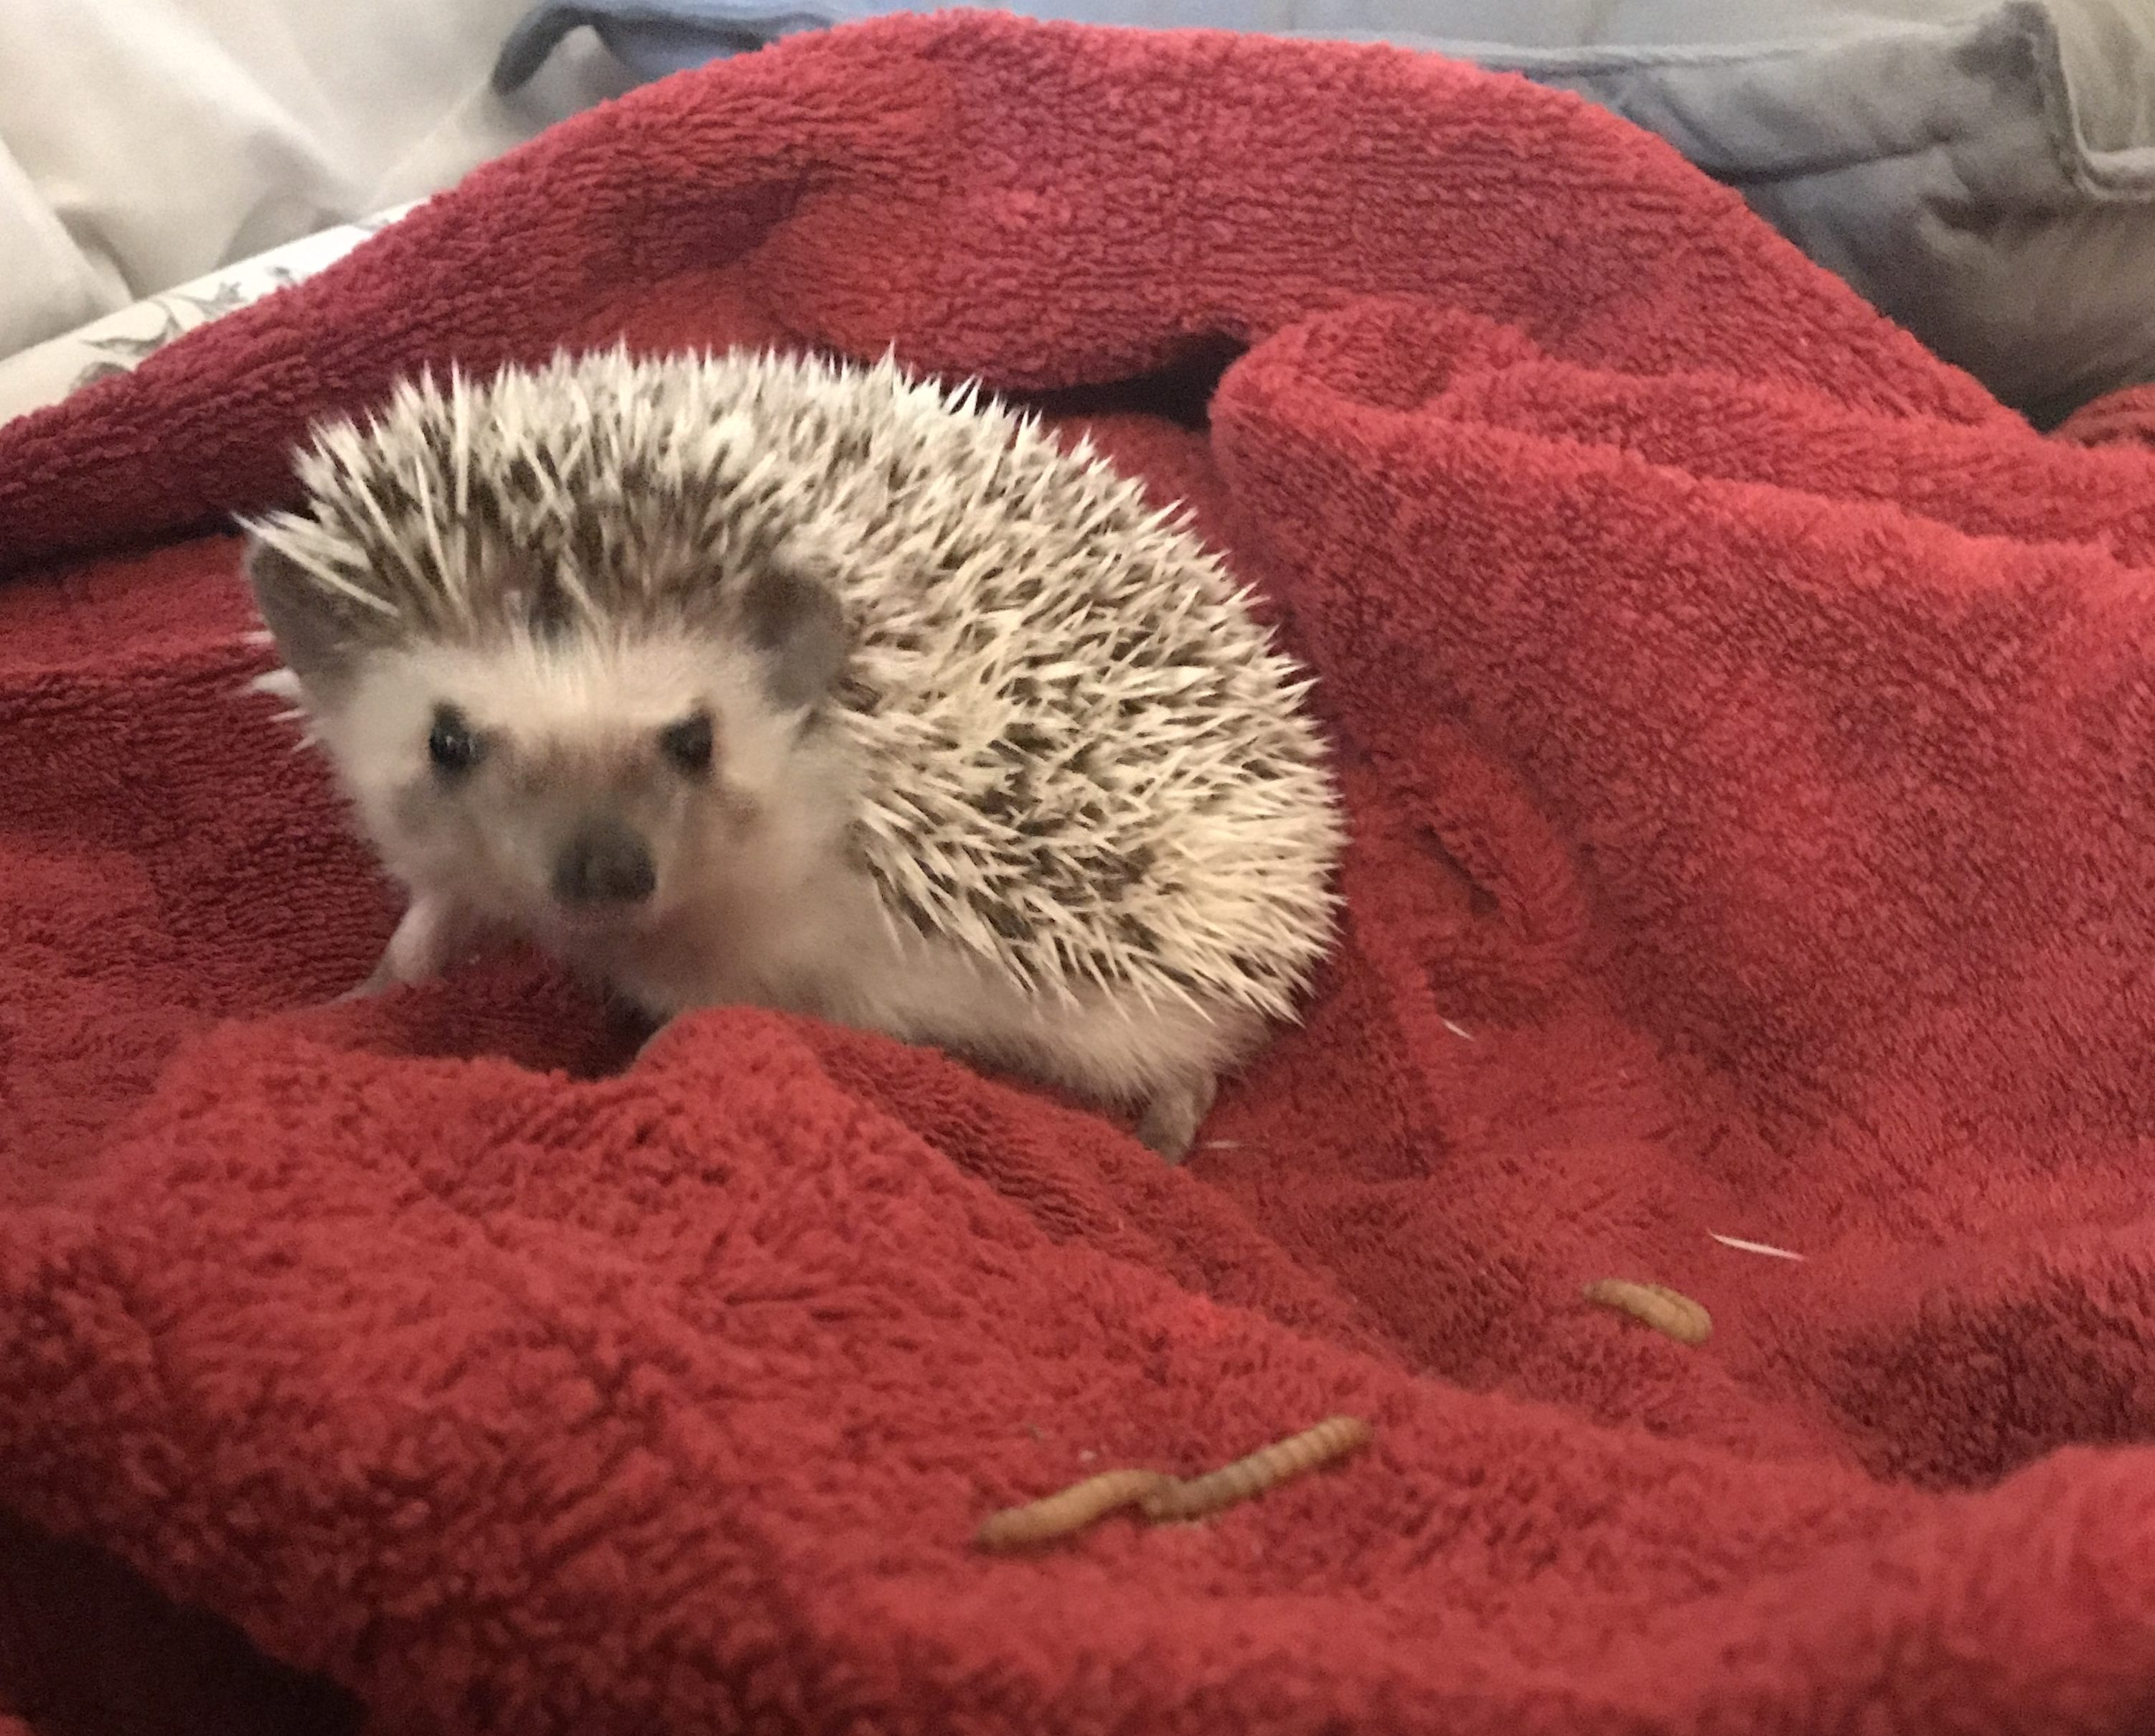 Henlo and mealworms